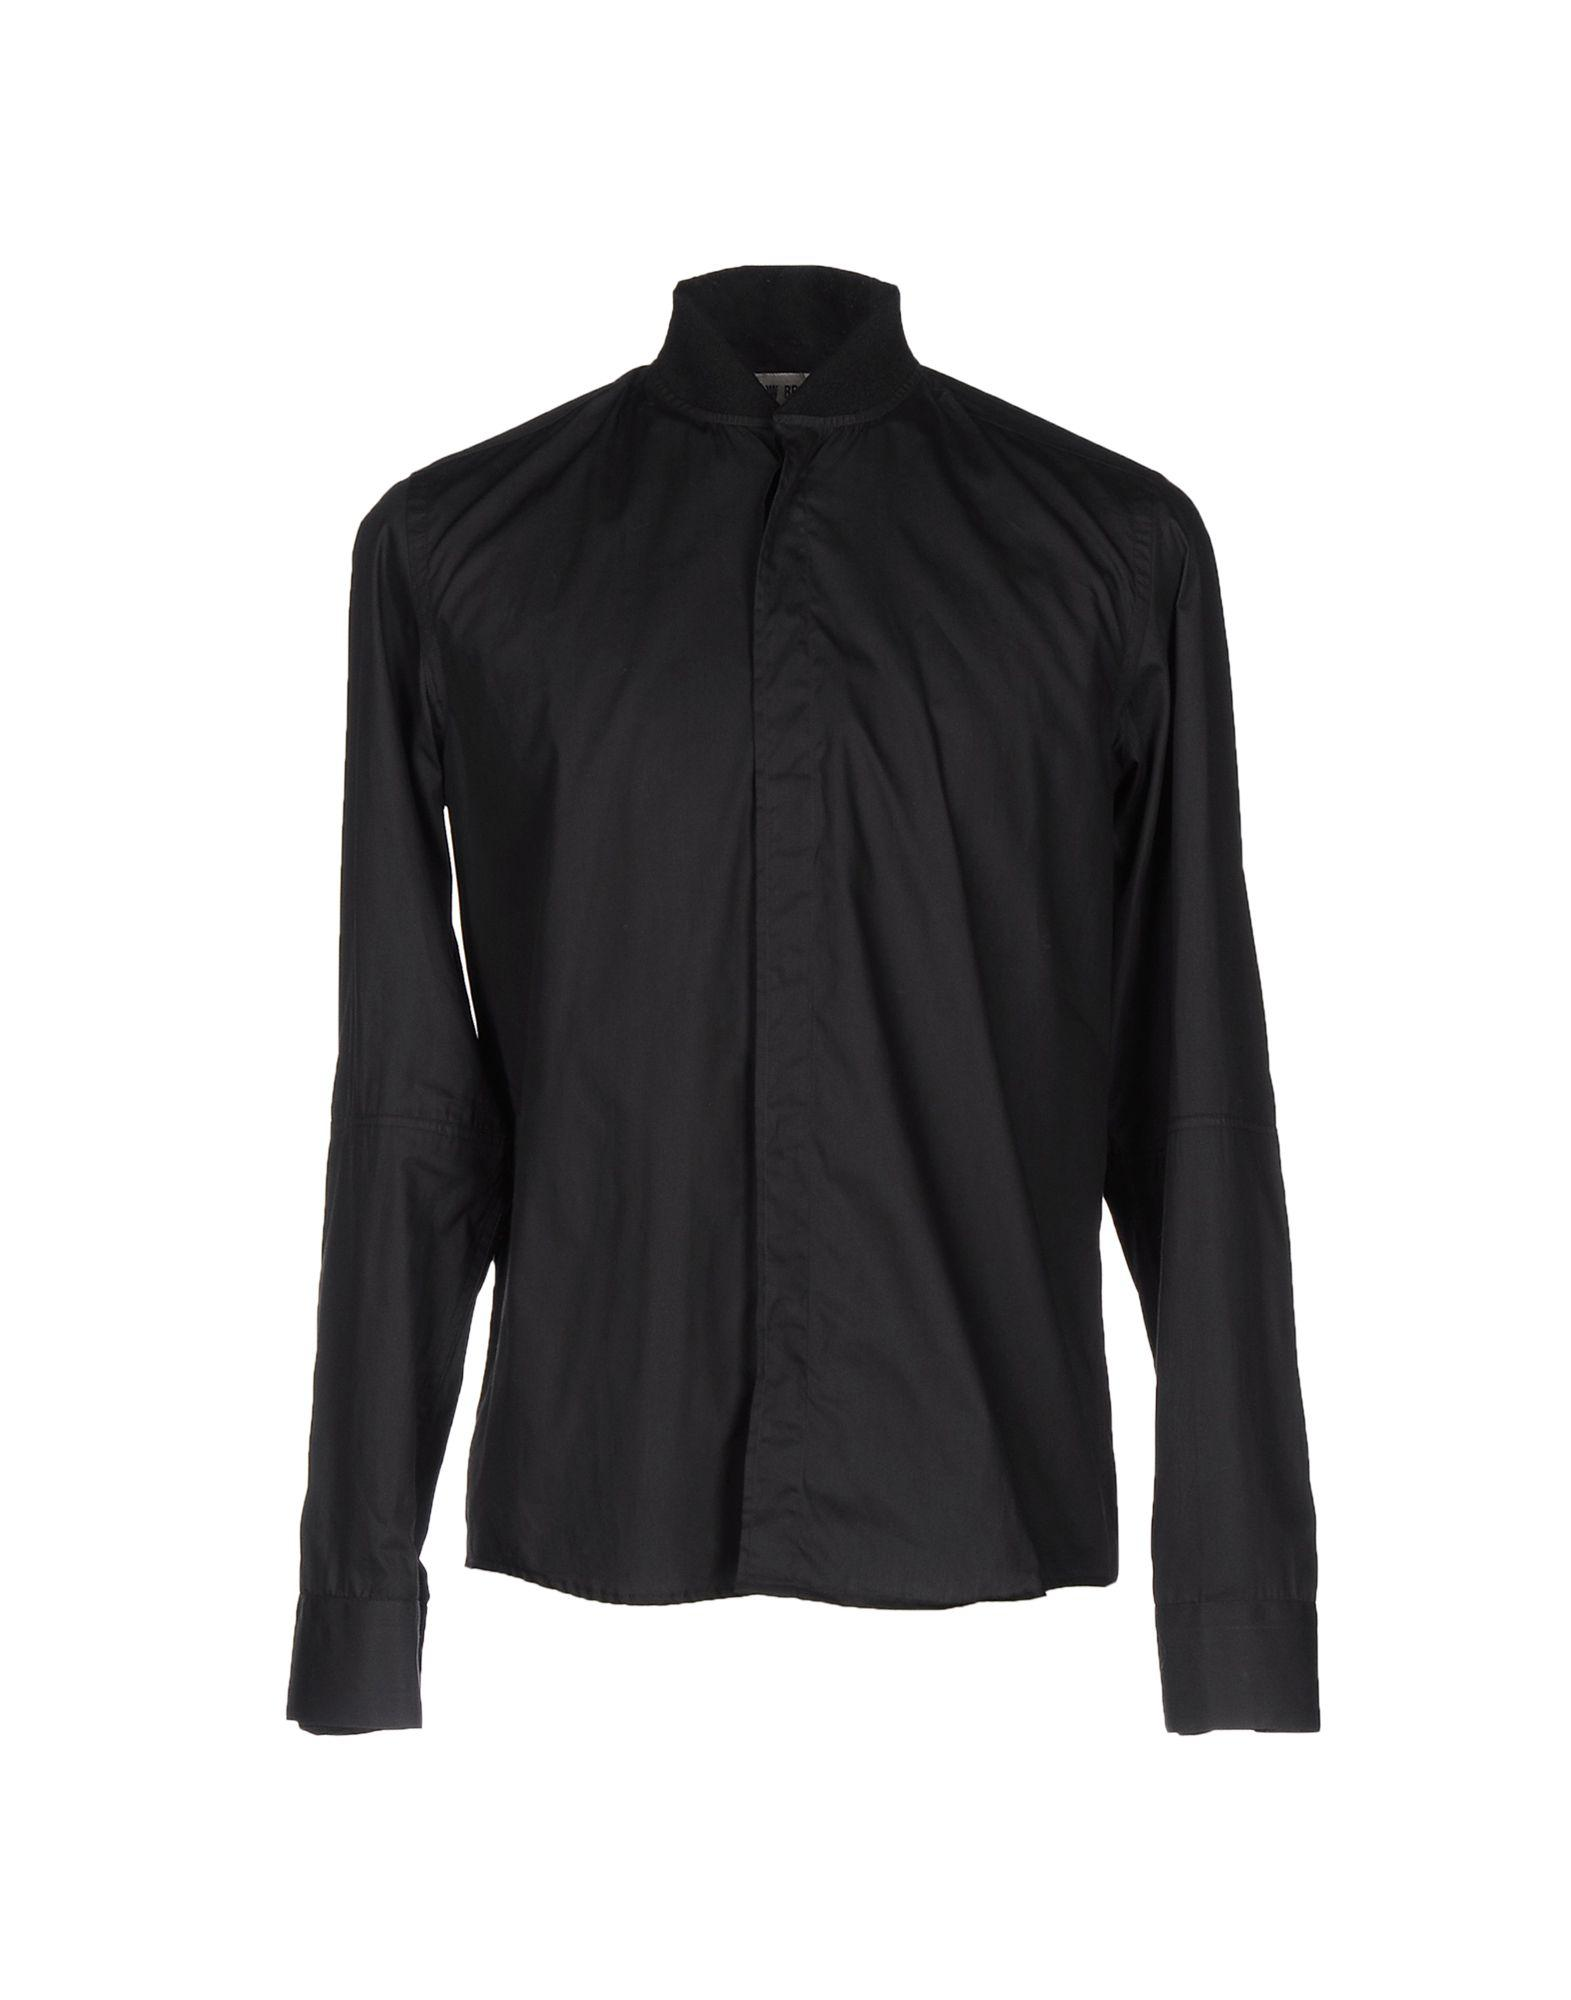 Low Brand Solid Color Shirt In Black